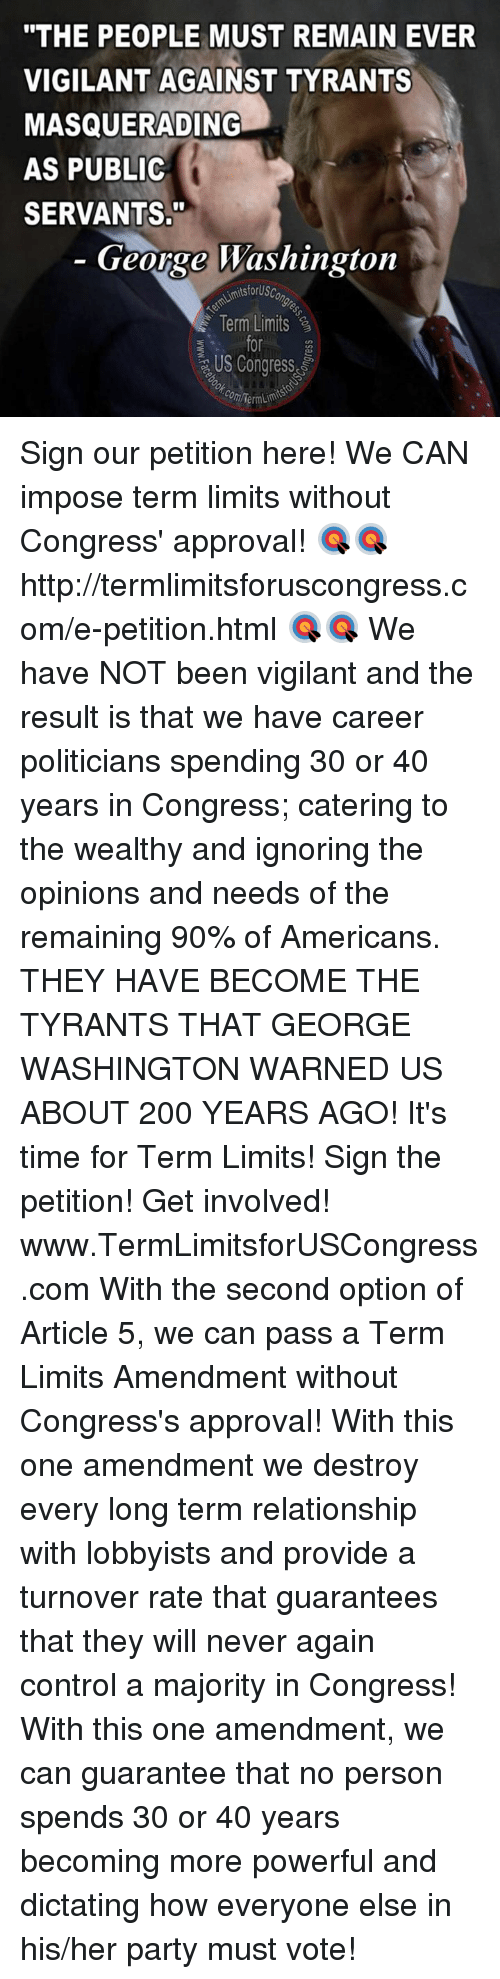 "Dictater: ""THE PEOPLE MUST REMAIN EVER  VIGILANT AGAINST TYRANTS  MASQUERADING  AS PUBLIC  SERVANTS.""  George Washington  AimitsforUsc  Term Limits  US Congress  com Term Sign our petition here! We CAN impose term limits without Congress' approval! 🎯🎯http://termlimitsforuscongress.com/e-petition.html 🎯🎯  We have NOT been vigilant and the result is that we have career politicians spending 30 or 40 years in Congress; catering to the wealthy and ignoring the opinions and needs of the remaining 90% of Americans.  THEY HAVE BECOME THE TYRANTS THAT GEORGE WASHINGTON WARNED US ABOUT 200 YEARS AGO!  It's time for Term Limits! Sign the petition! Get involved! www.TermLimitsforUSCongress.com  With the second option of Article 5, we can pass a Term Limits Amendment without Congress's approval! With this one amendment we destroy every long term relationship with lobbyists and provide a turnover rate that guarantees that they will never again control a majority in Congress! With this one amendment, we can guarantee that no person spends 30 or 40 years becoming more powerful and dictating how everyone else in his/her party must vote!"